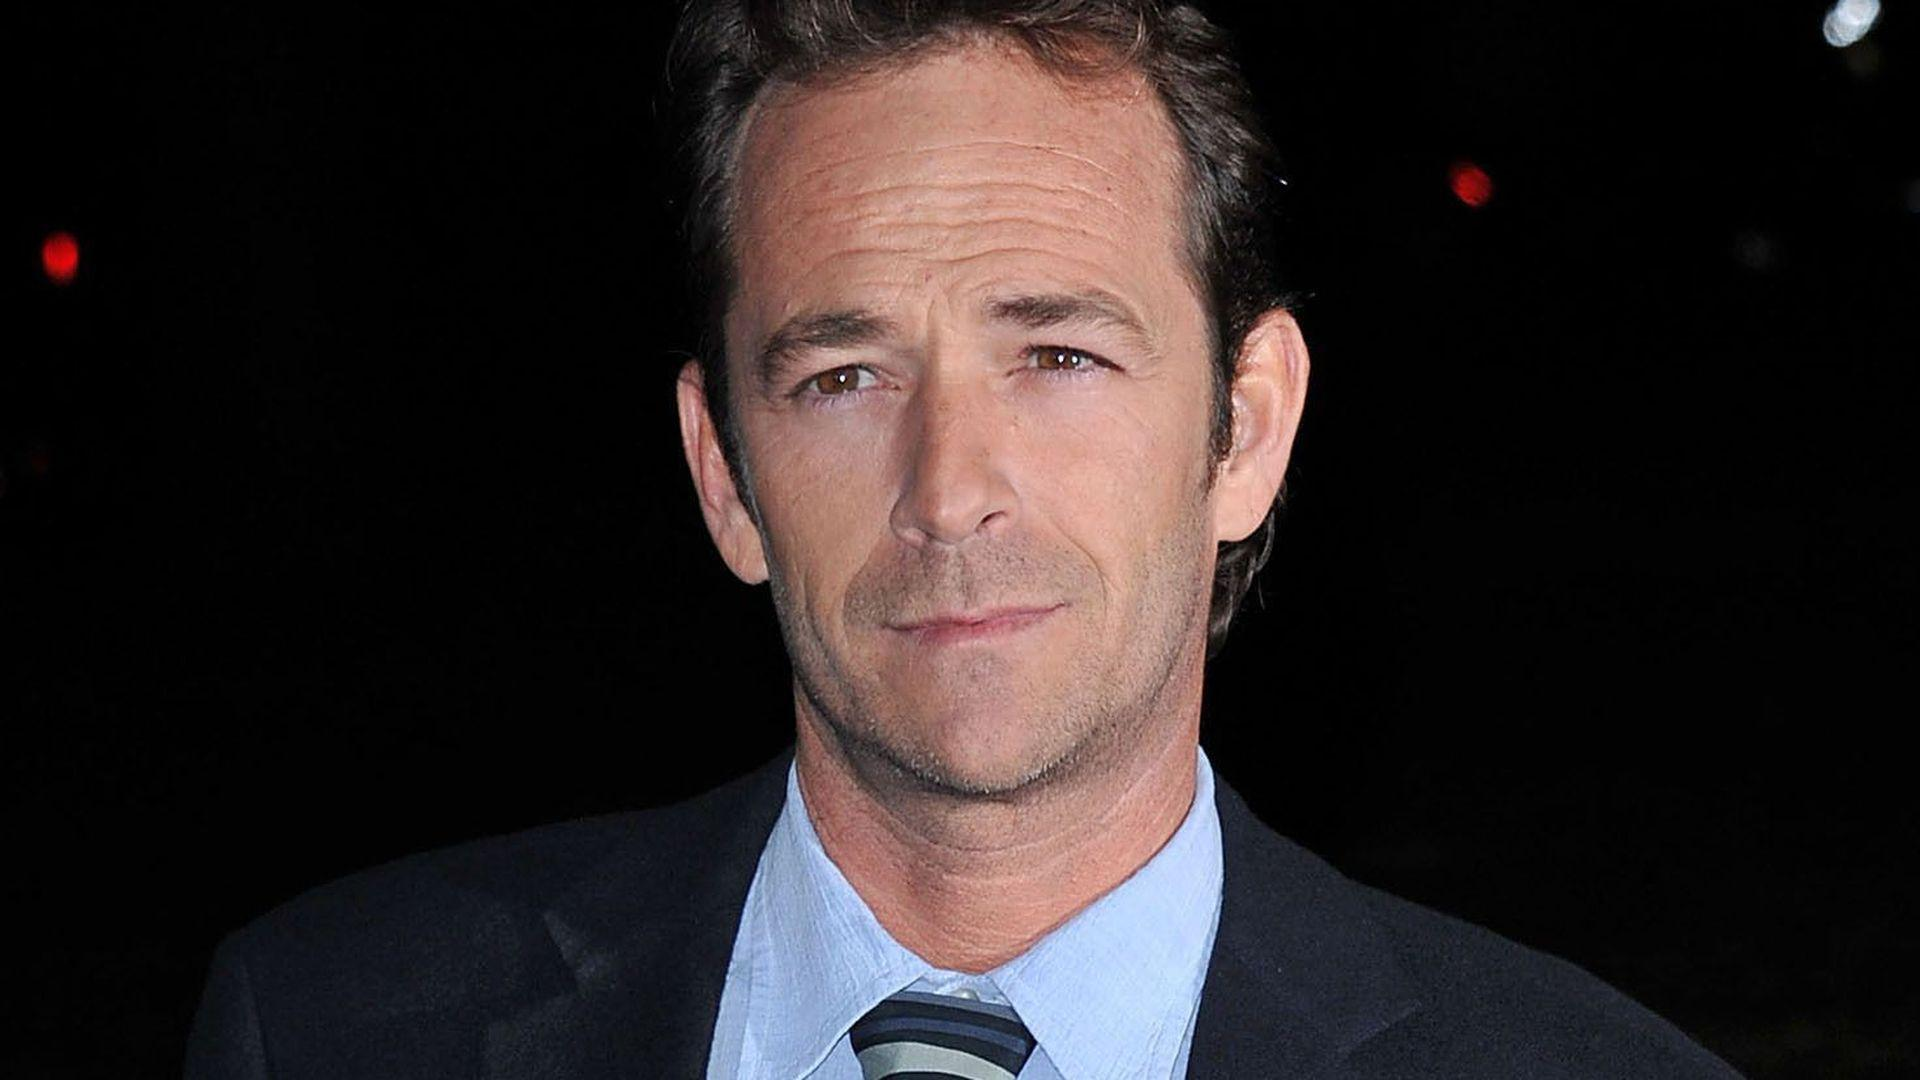 Luke Perry Actor Beverly Hills 90210 Luke Perry was born on October 11 1966 in Mansfield Ohio USA as Coy Luther Perry III He is an actor and producer known